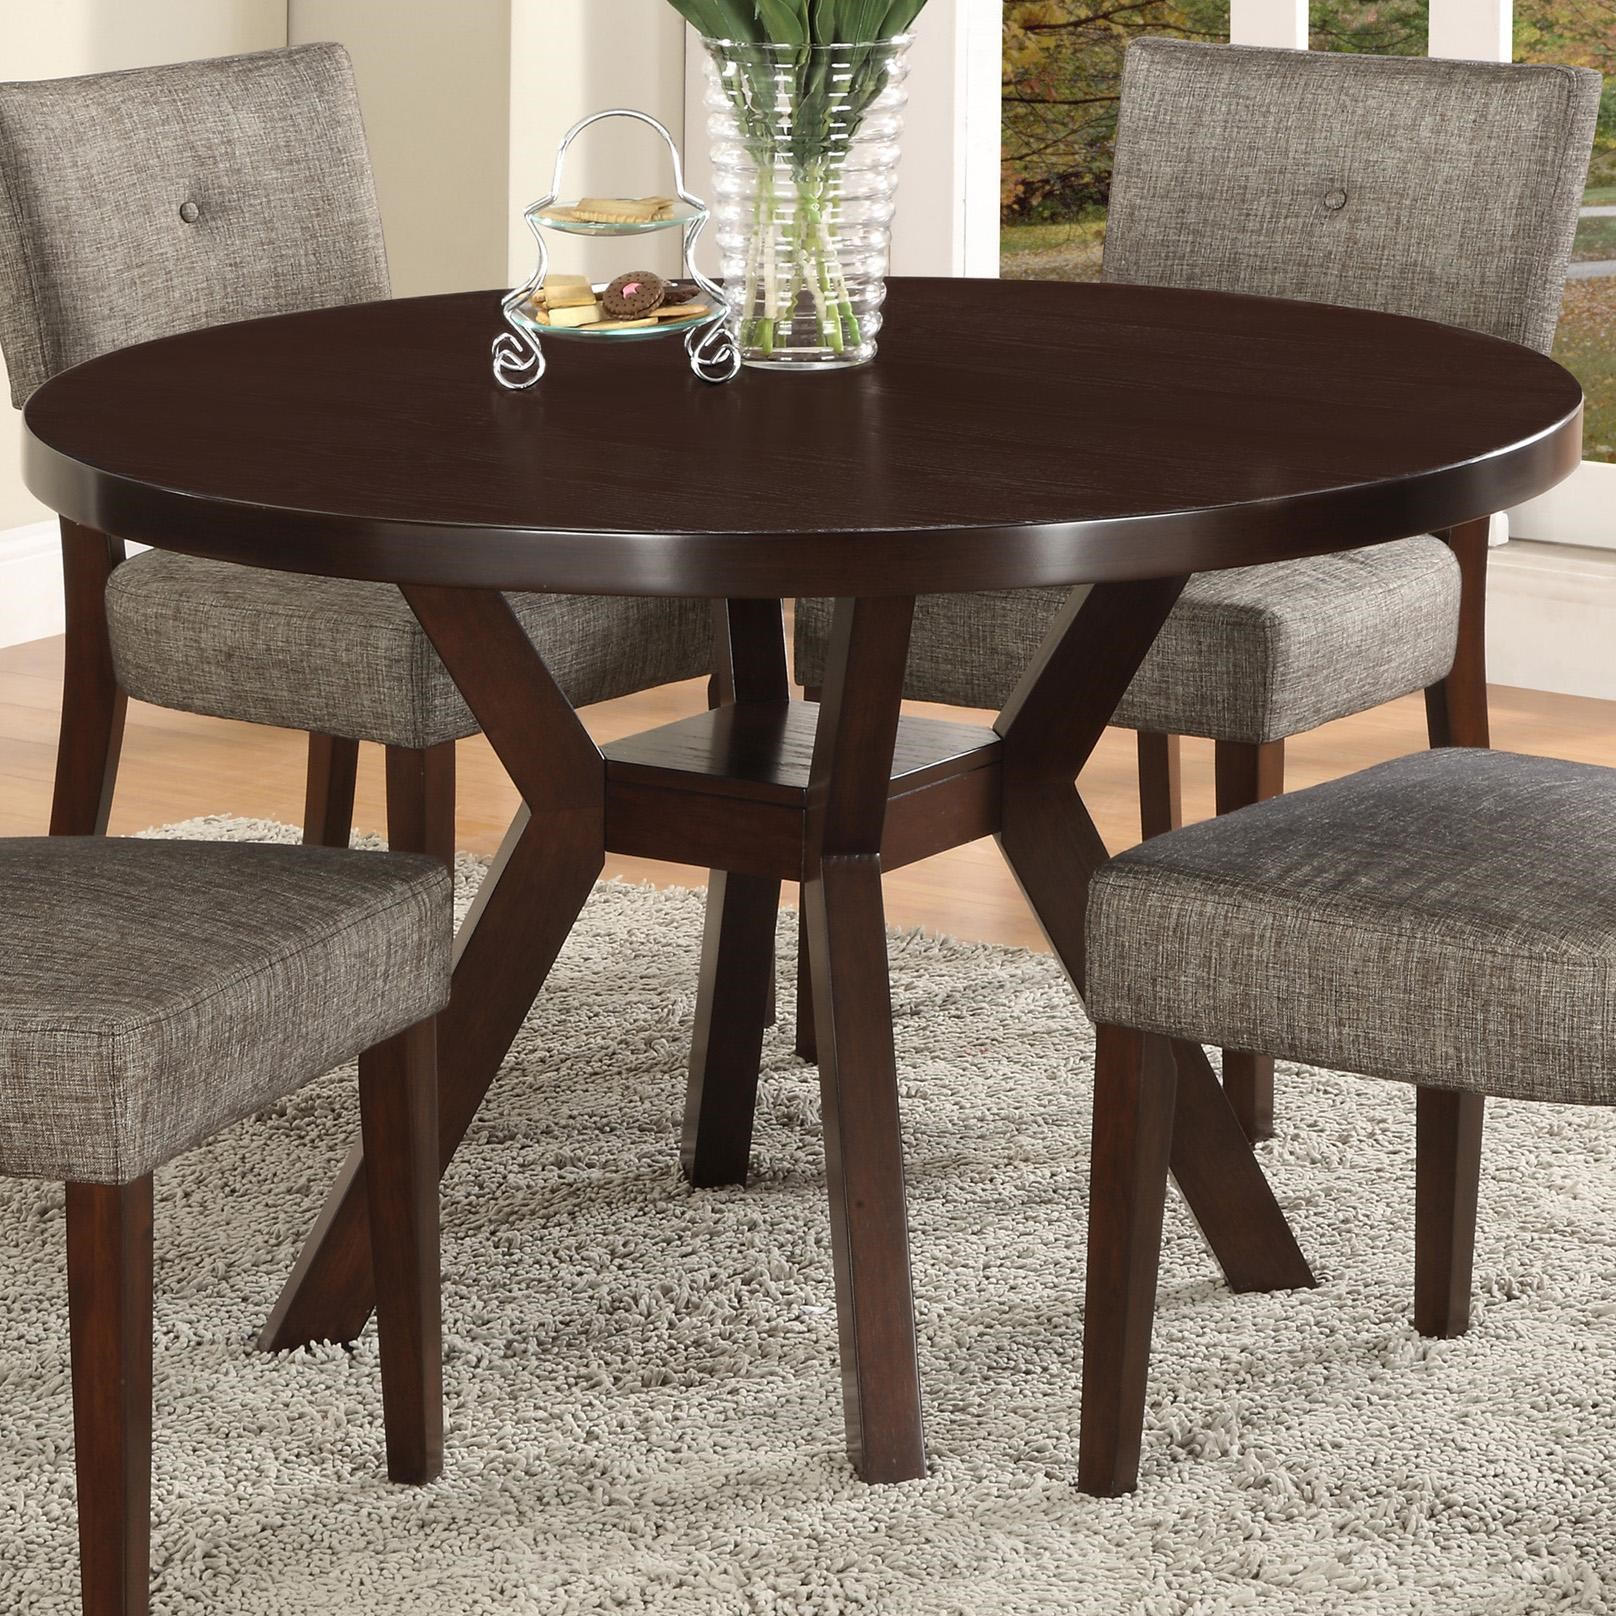 48 dining table natural wood crown mark kayla round trestle base dining table lindys furniture